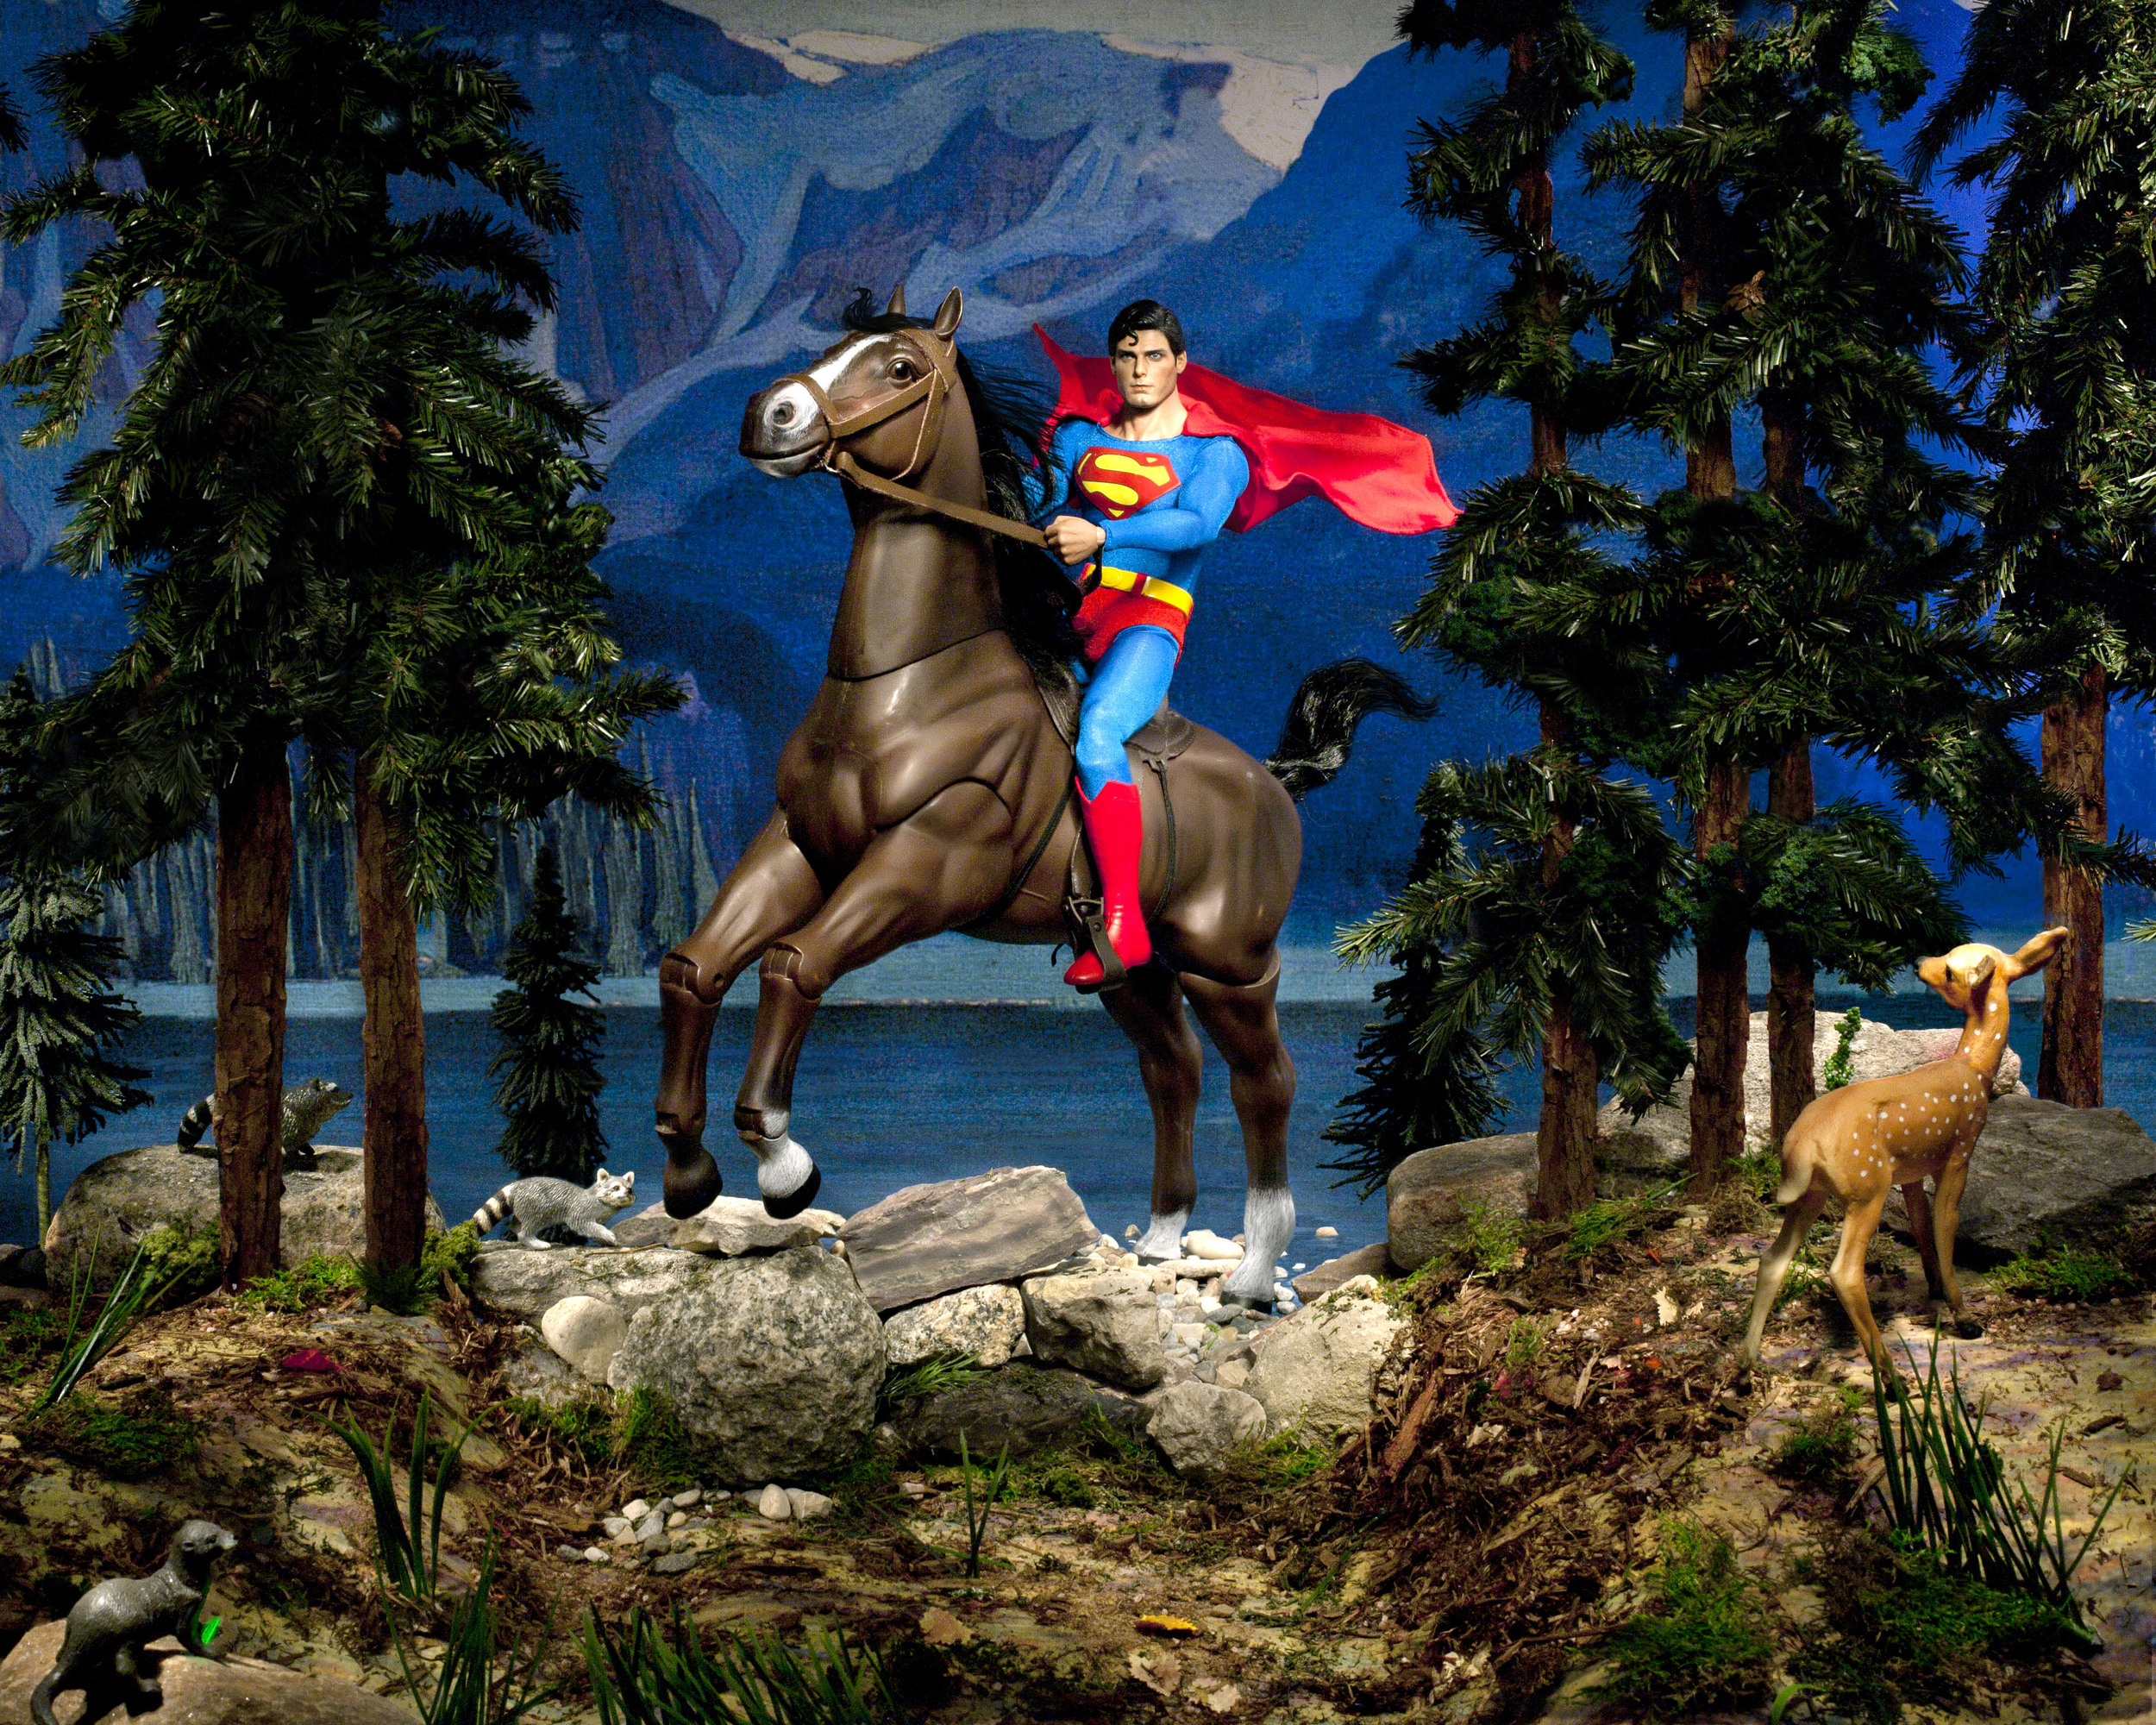 "Lake O'Hara (Clark, Northern Dancer and the Evil Weasel), Digital Photograph, 2012, 30"" x 24"""